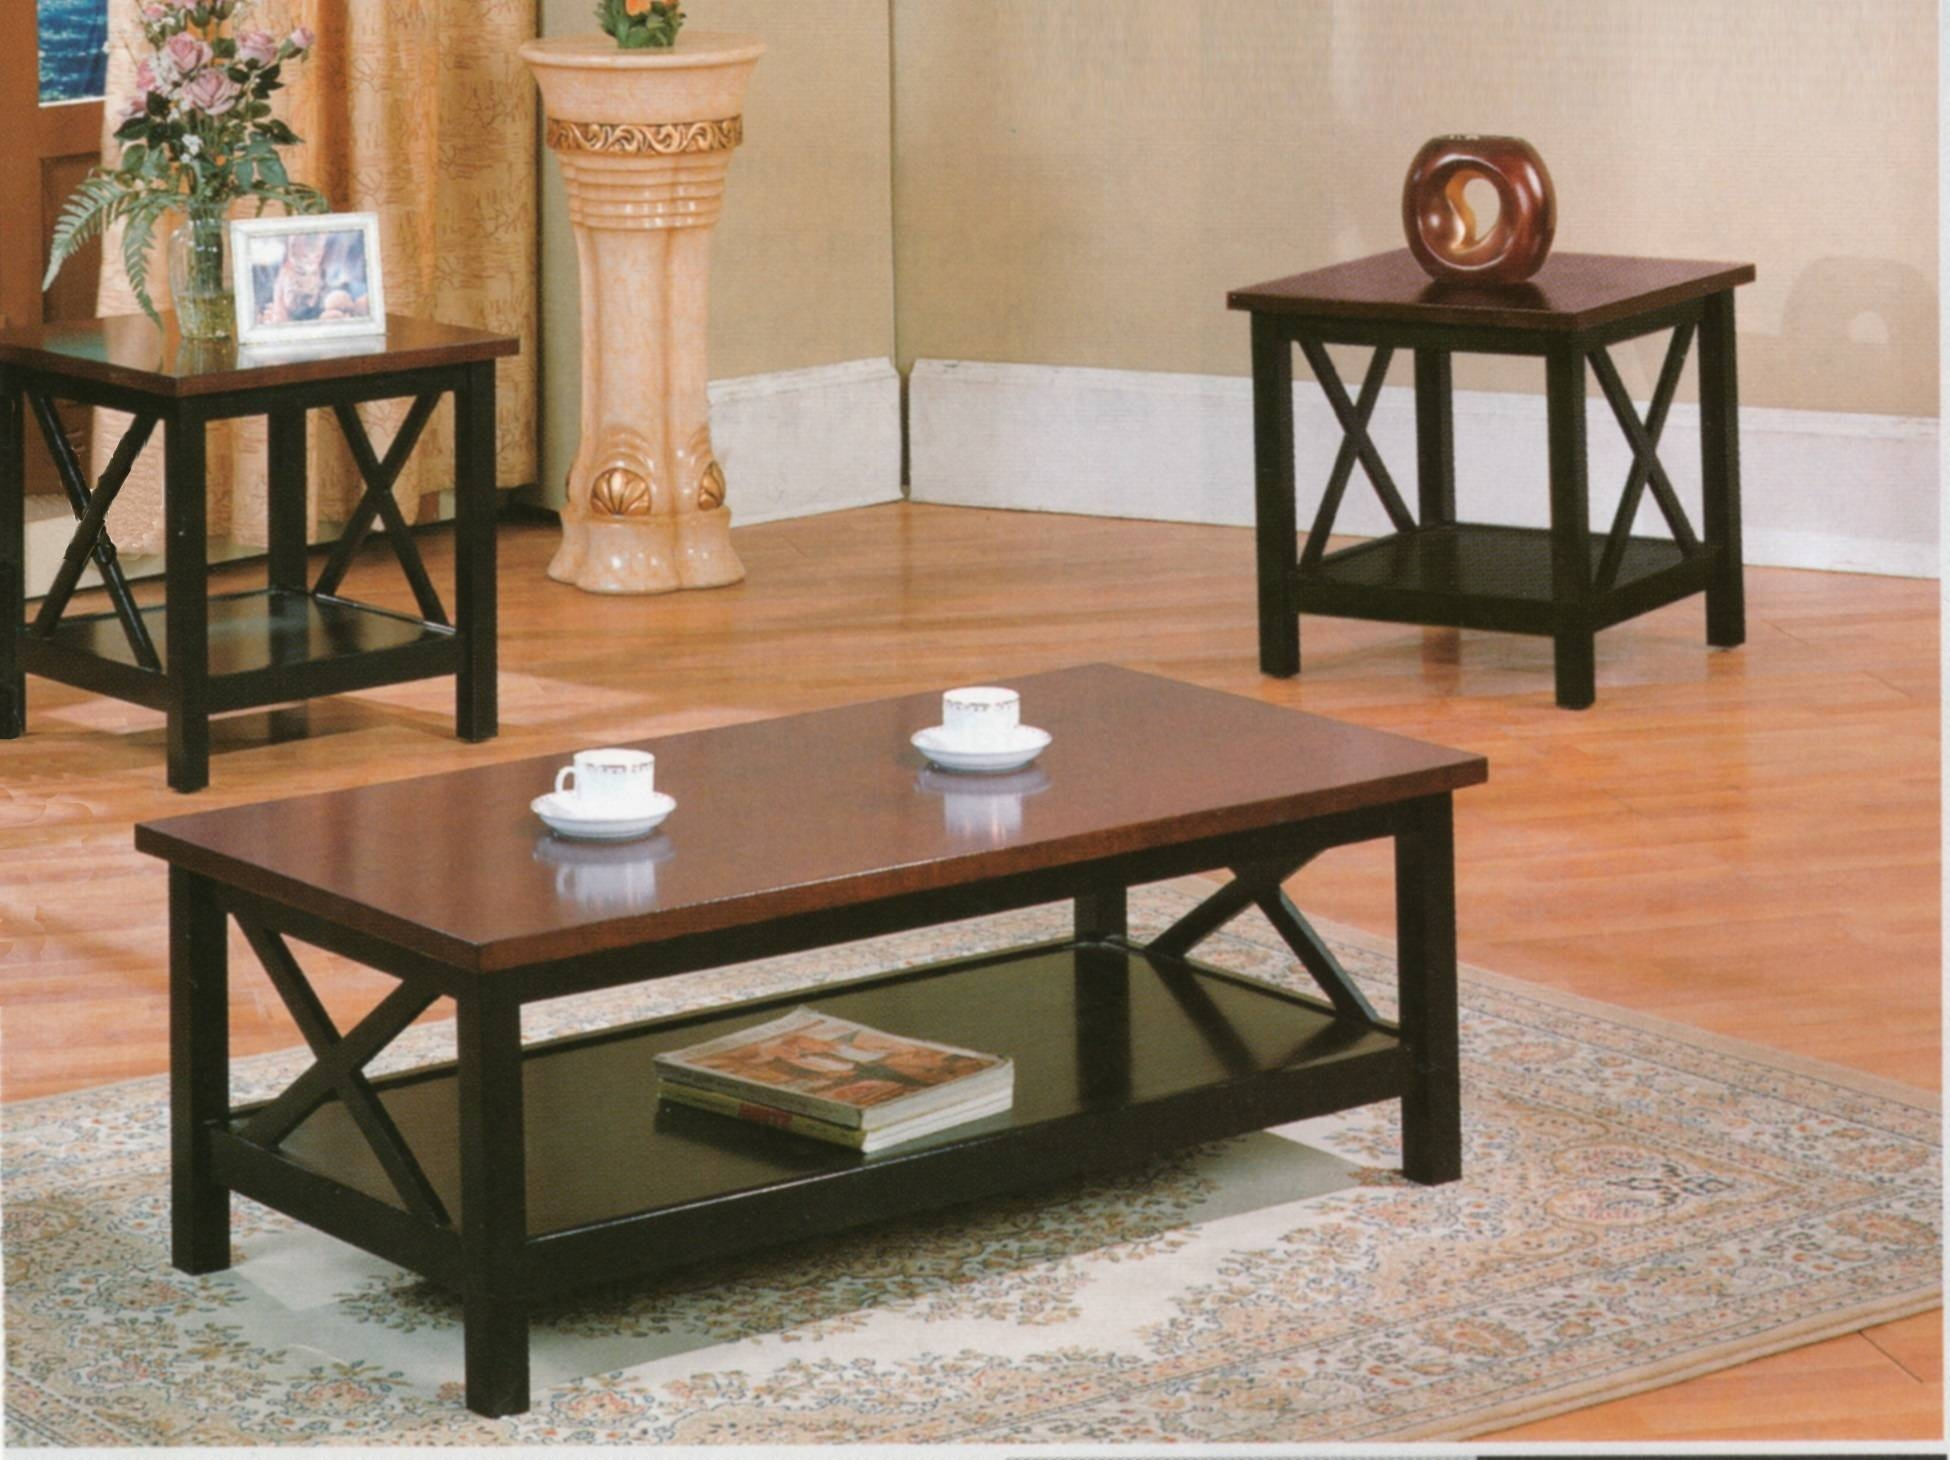 Cherry Coffee Table Set | Coffee Tables Decoration with regard to Cherry Wood Coffee Table Sets (Image 5 of 30)